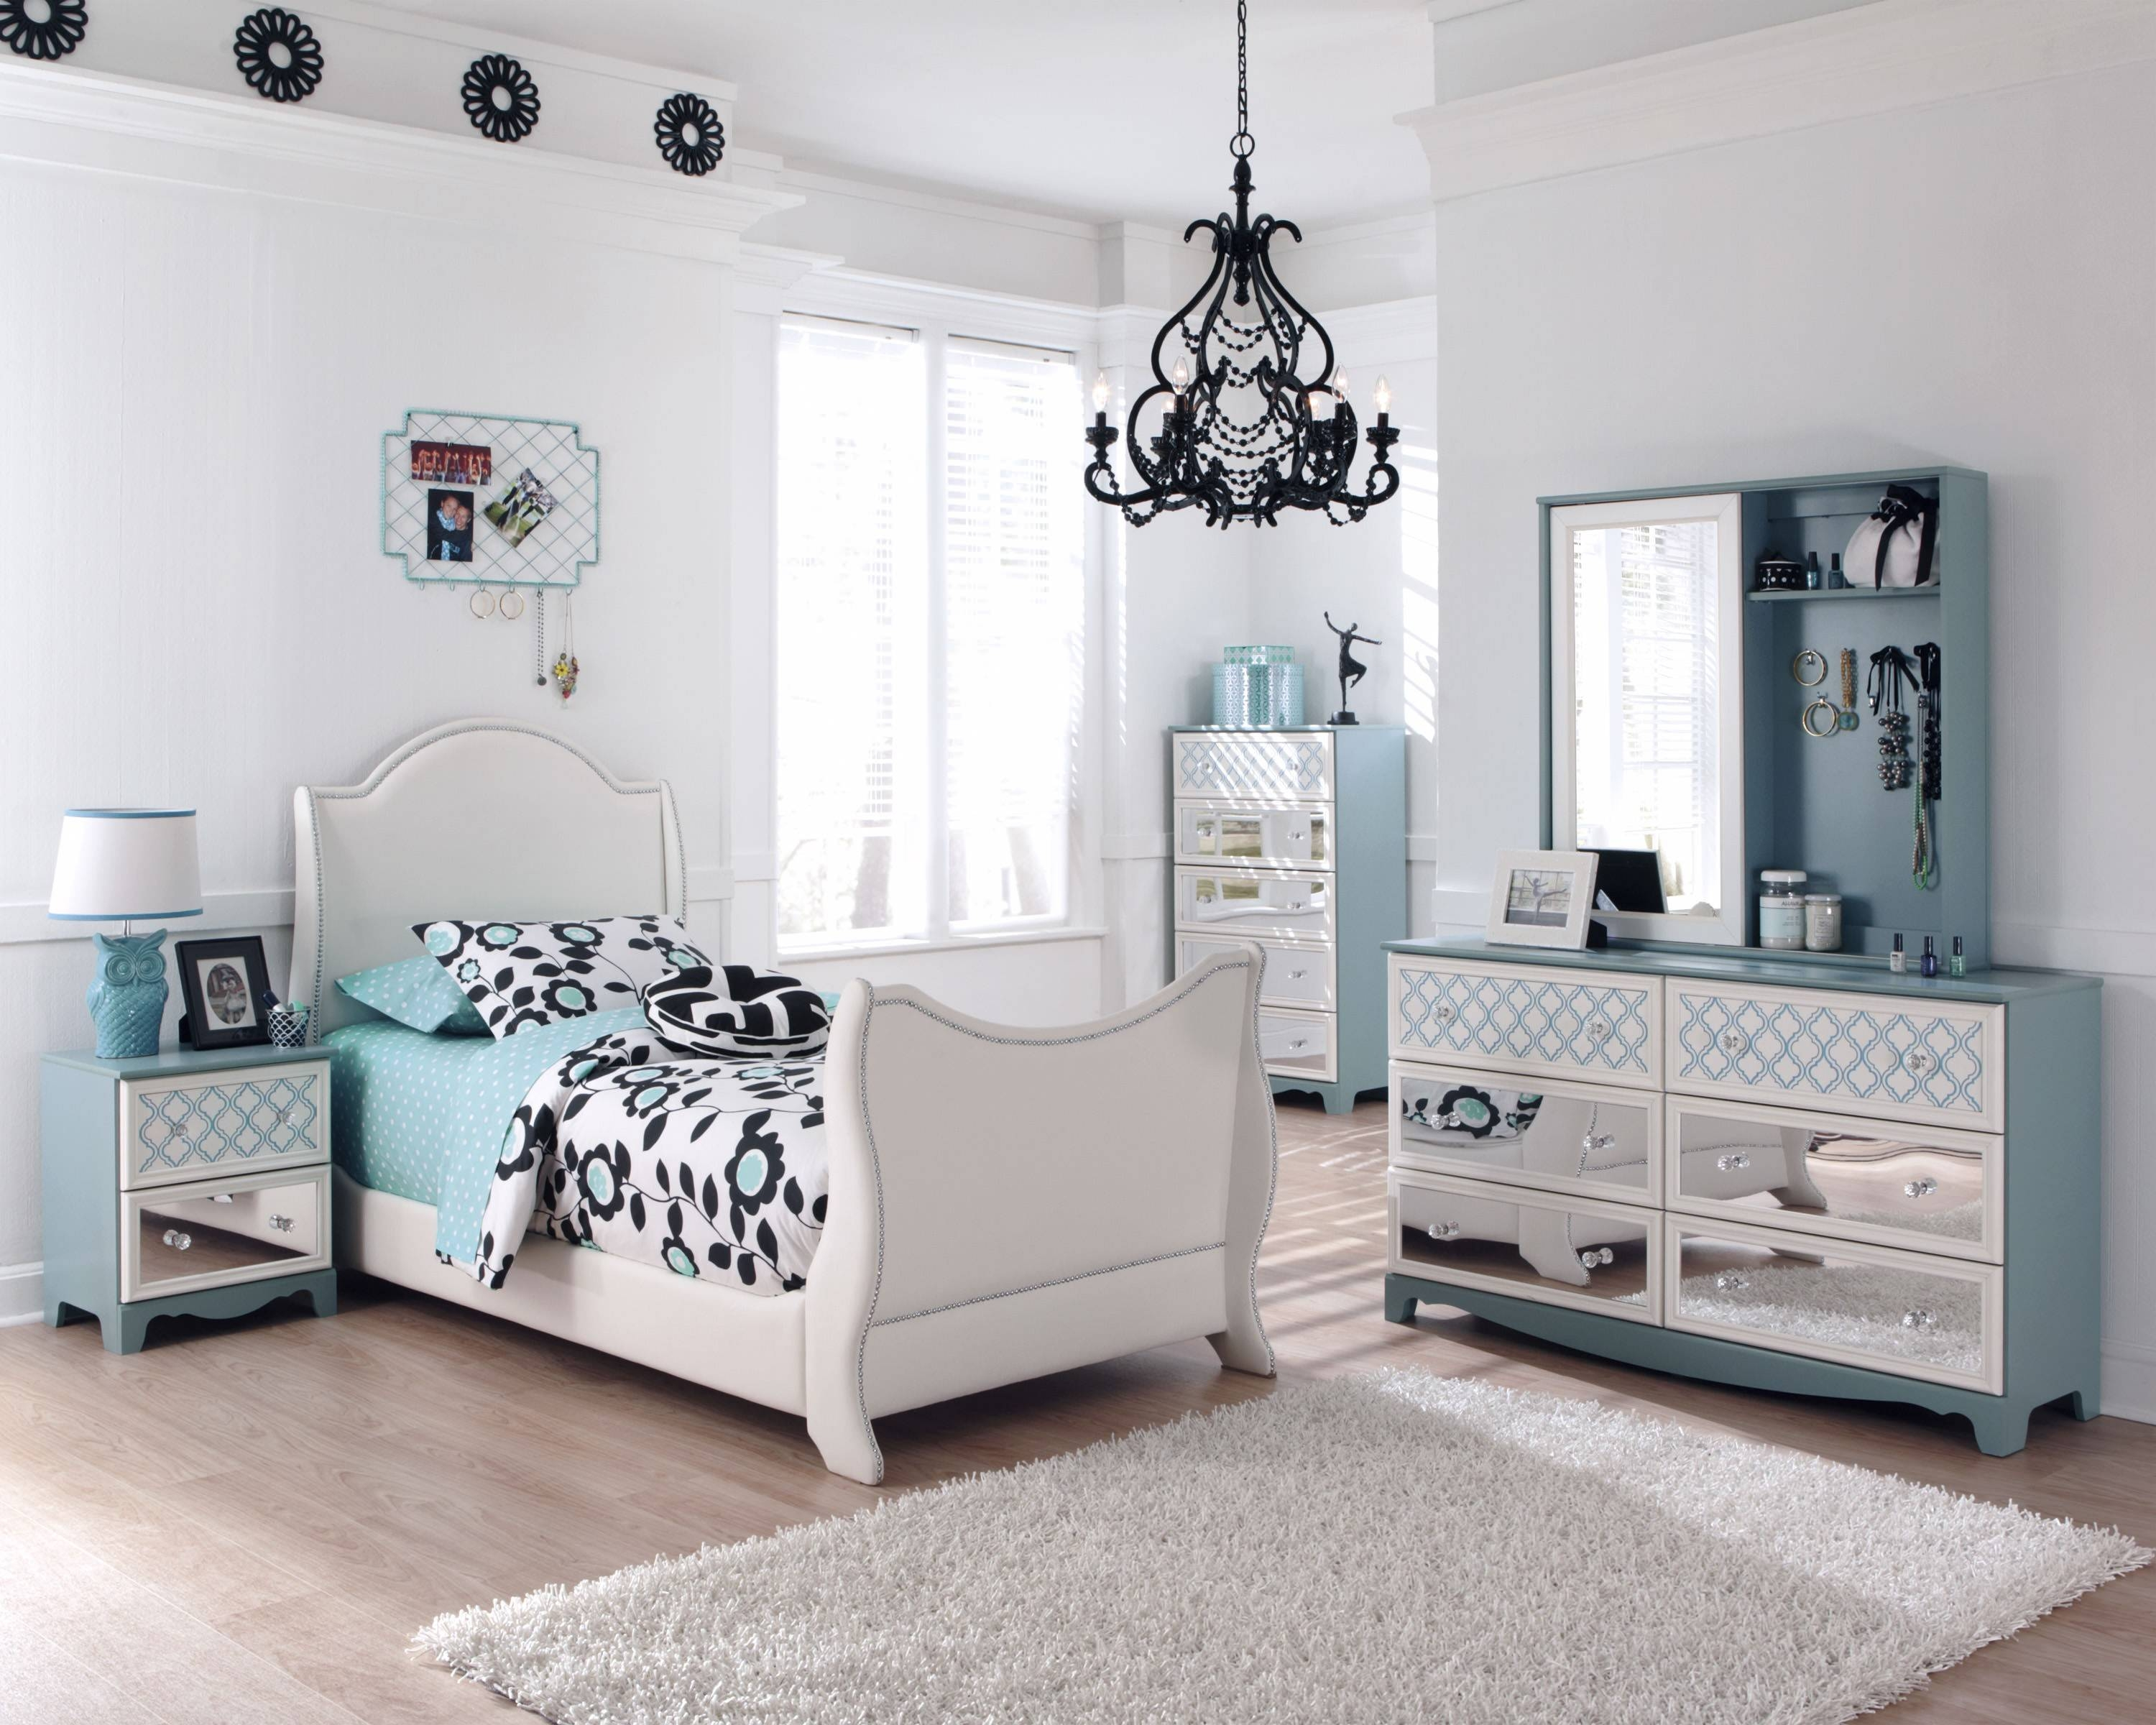 Mirrored Sideboards For A Master Bedroom Decor With Regard To Bedroom Sideboards (#13 of 15)